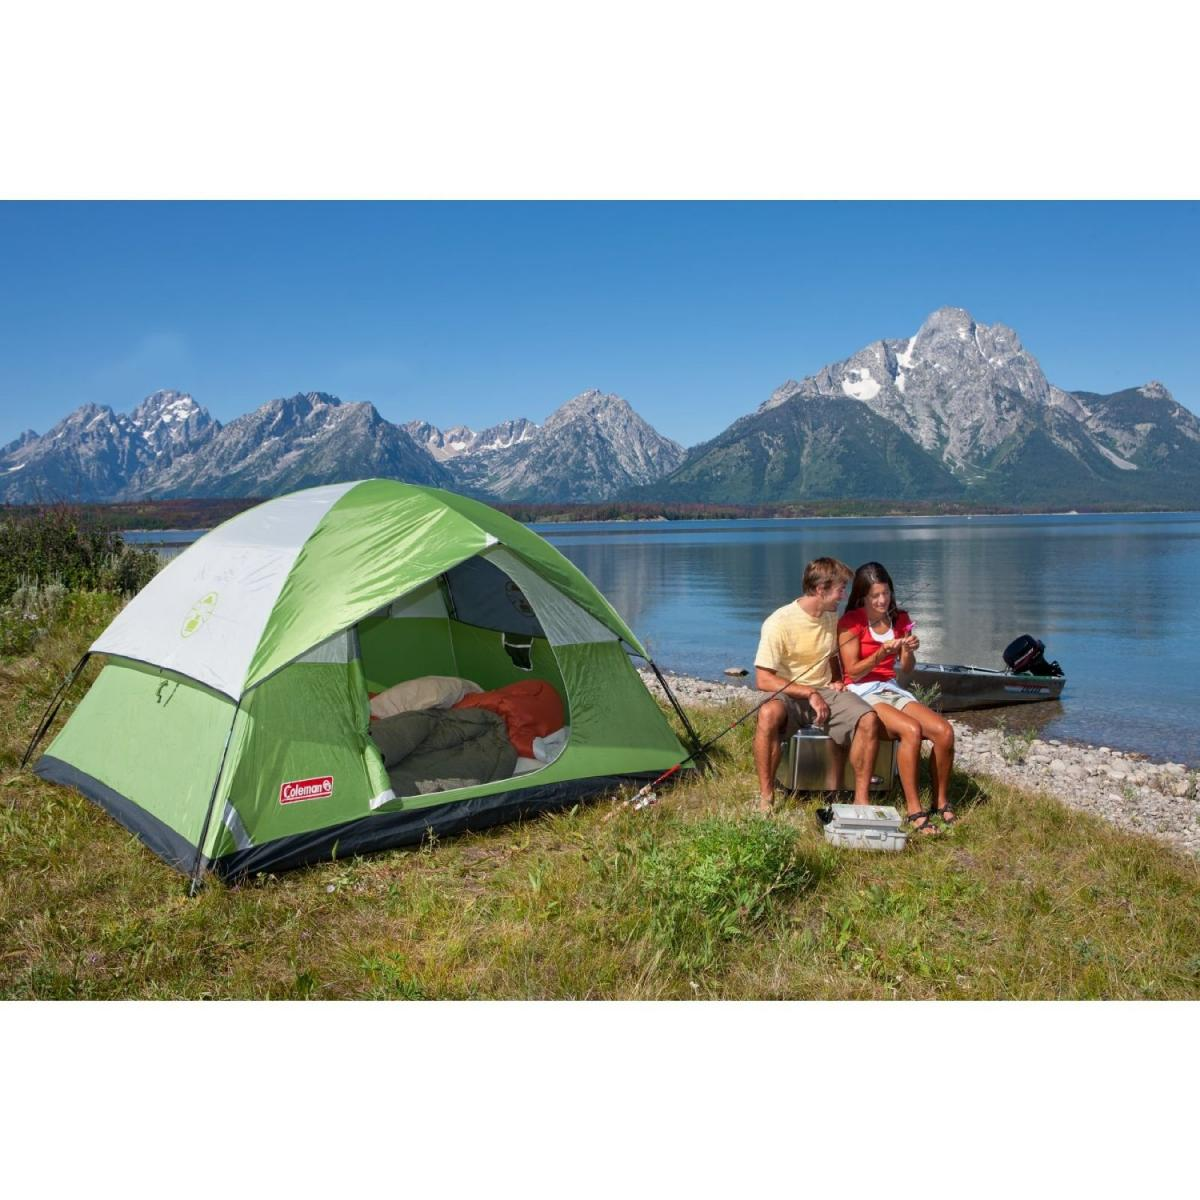 Click image for larger version  Name:1-best-4-person-camping-tent-.jpg Views:11 Size:159.3 KB ID:16264